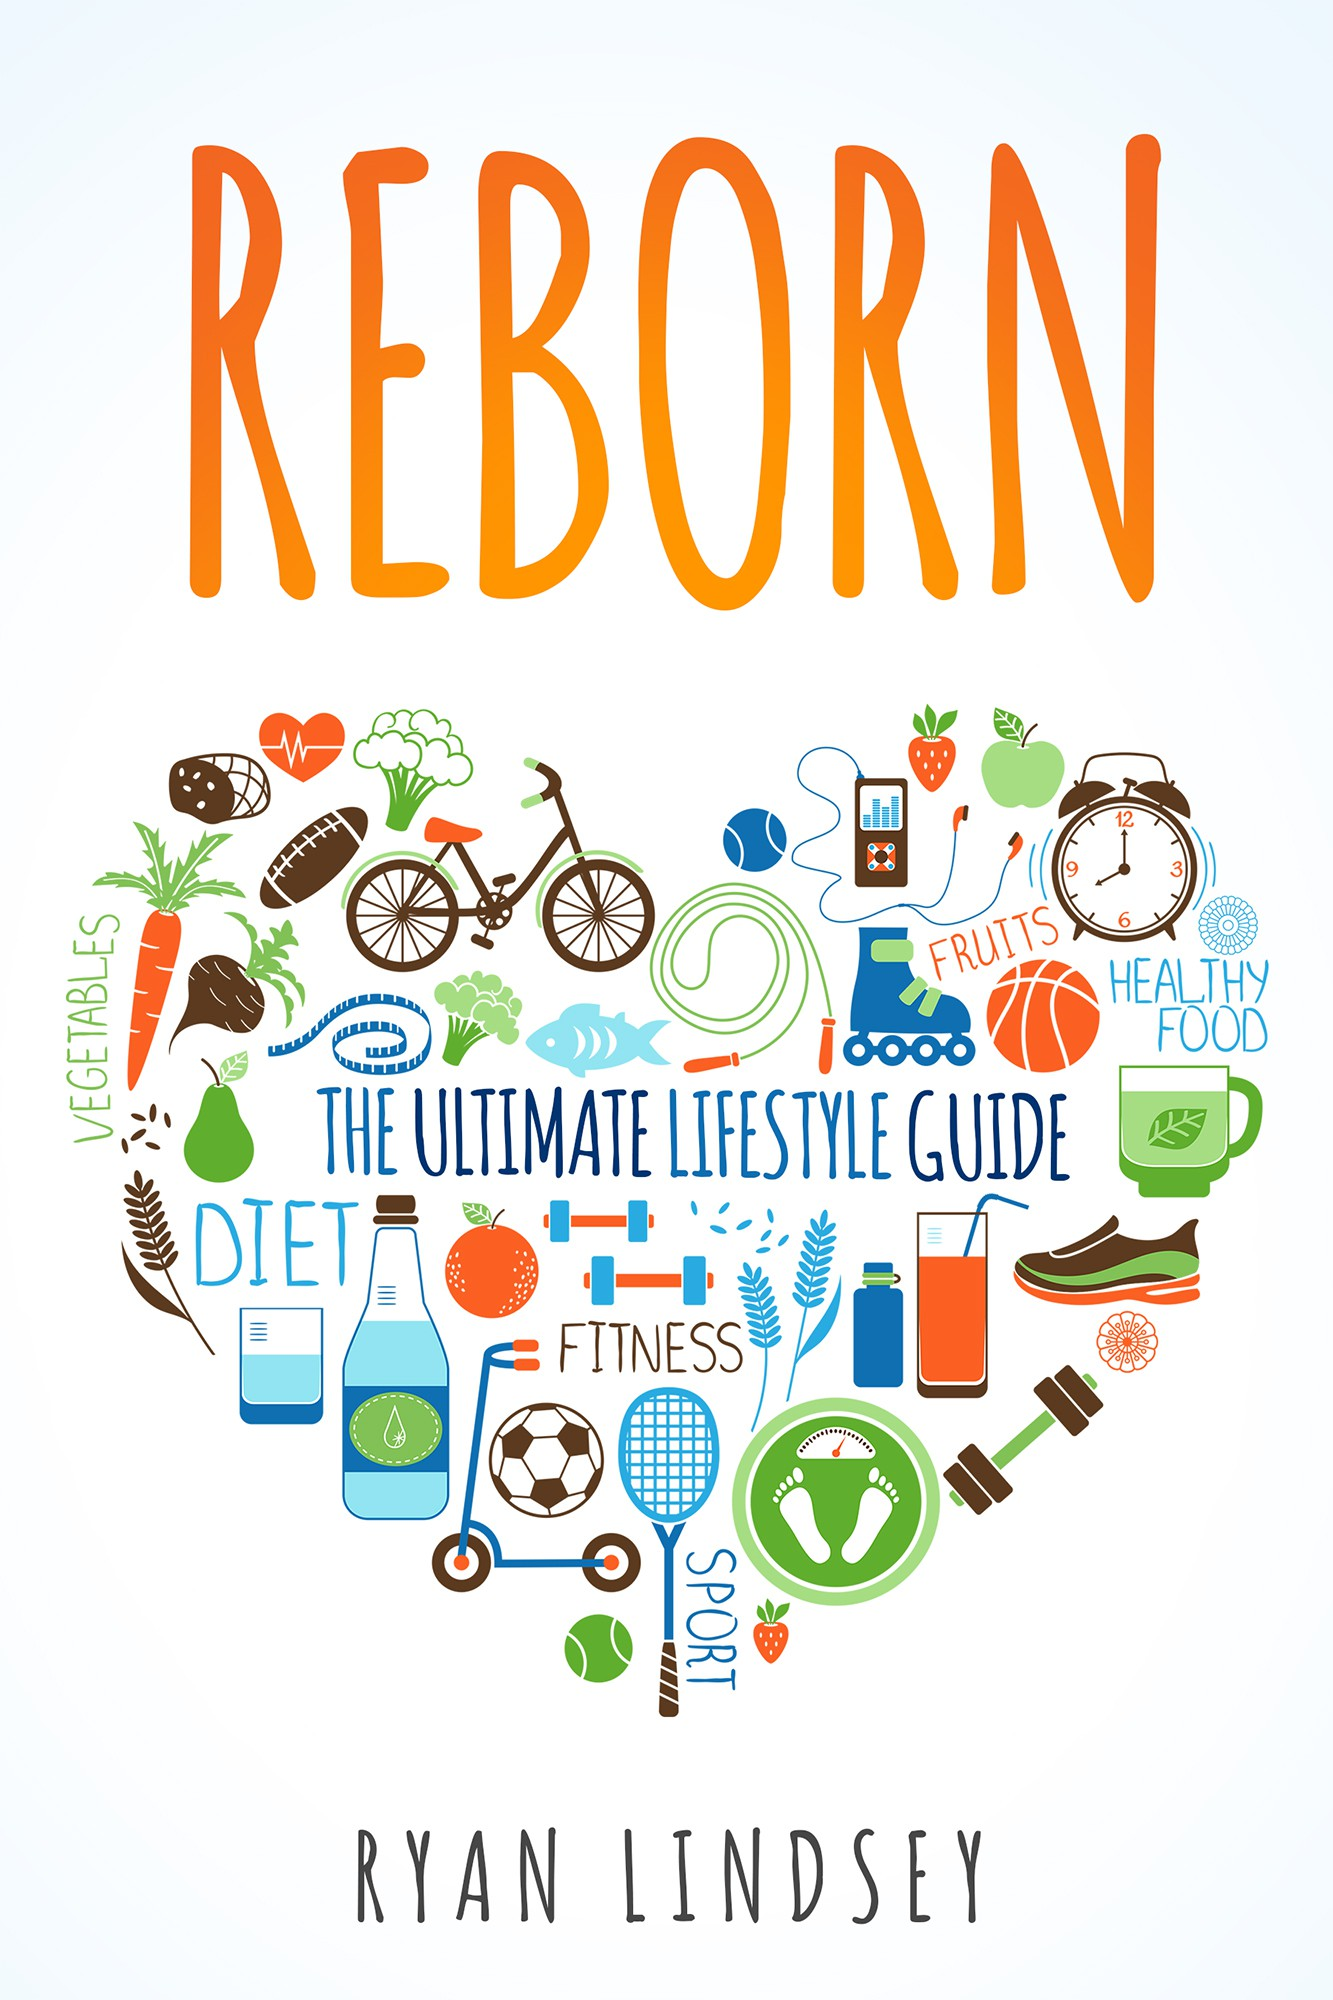 Create eBook front cover for the ultimate lifestyle guide